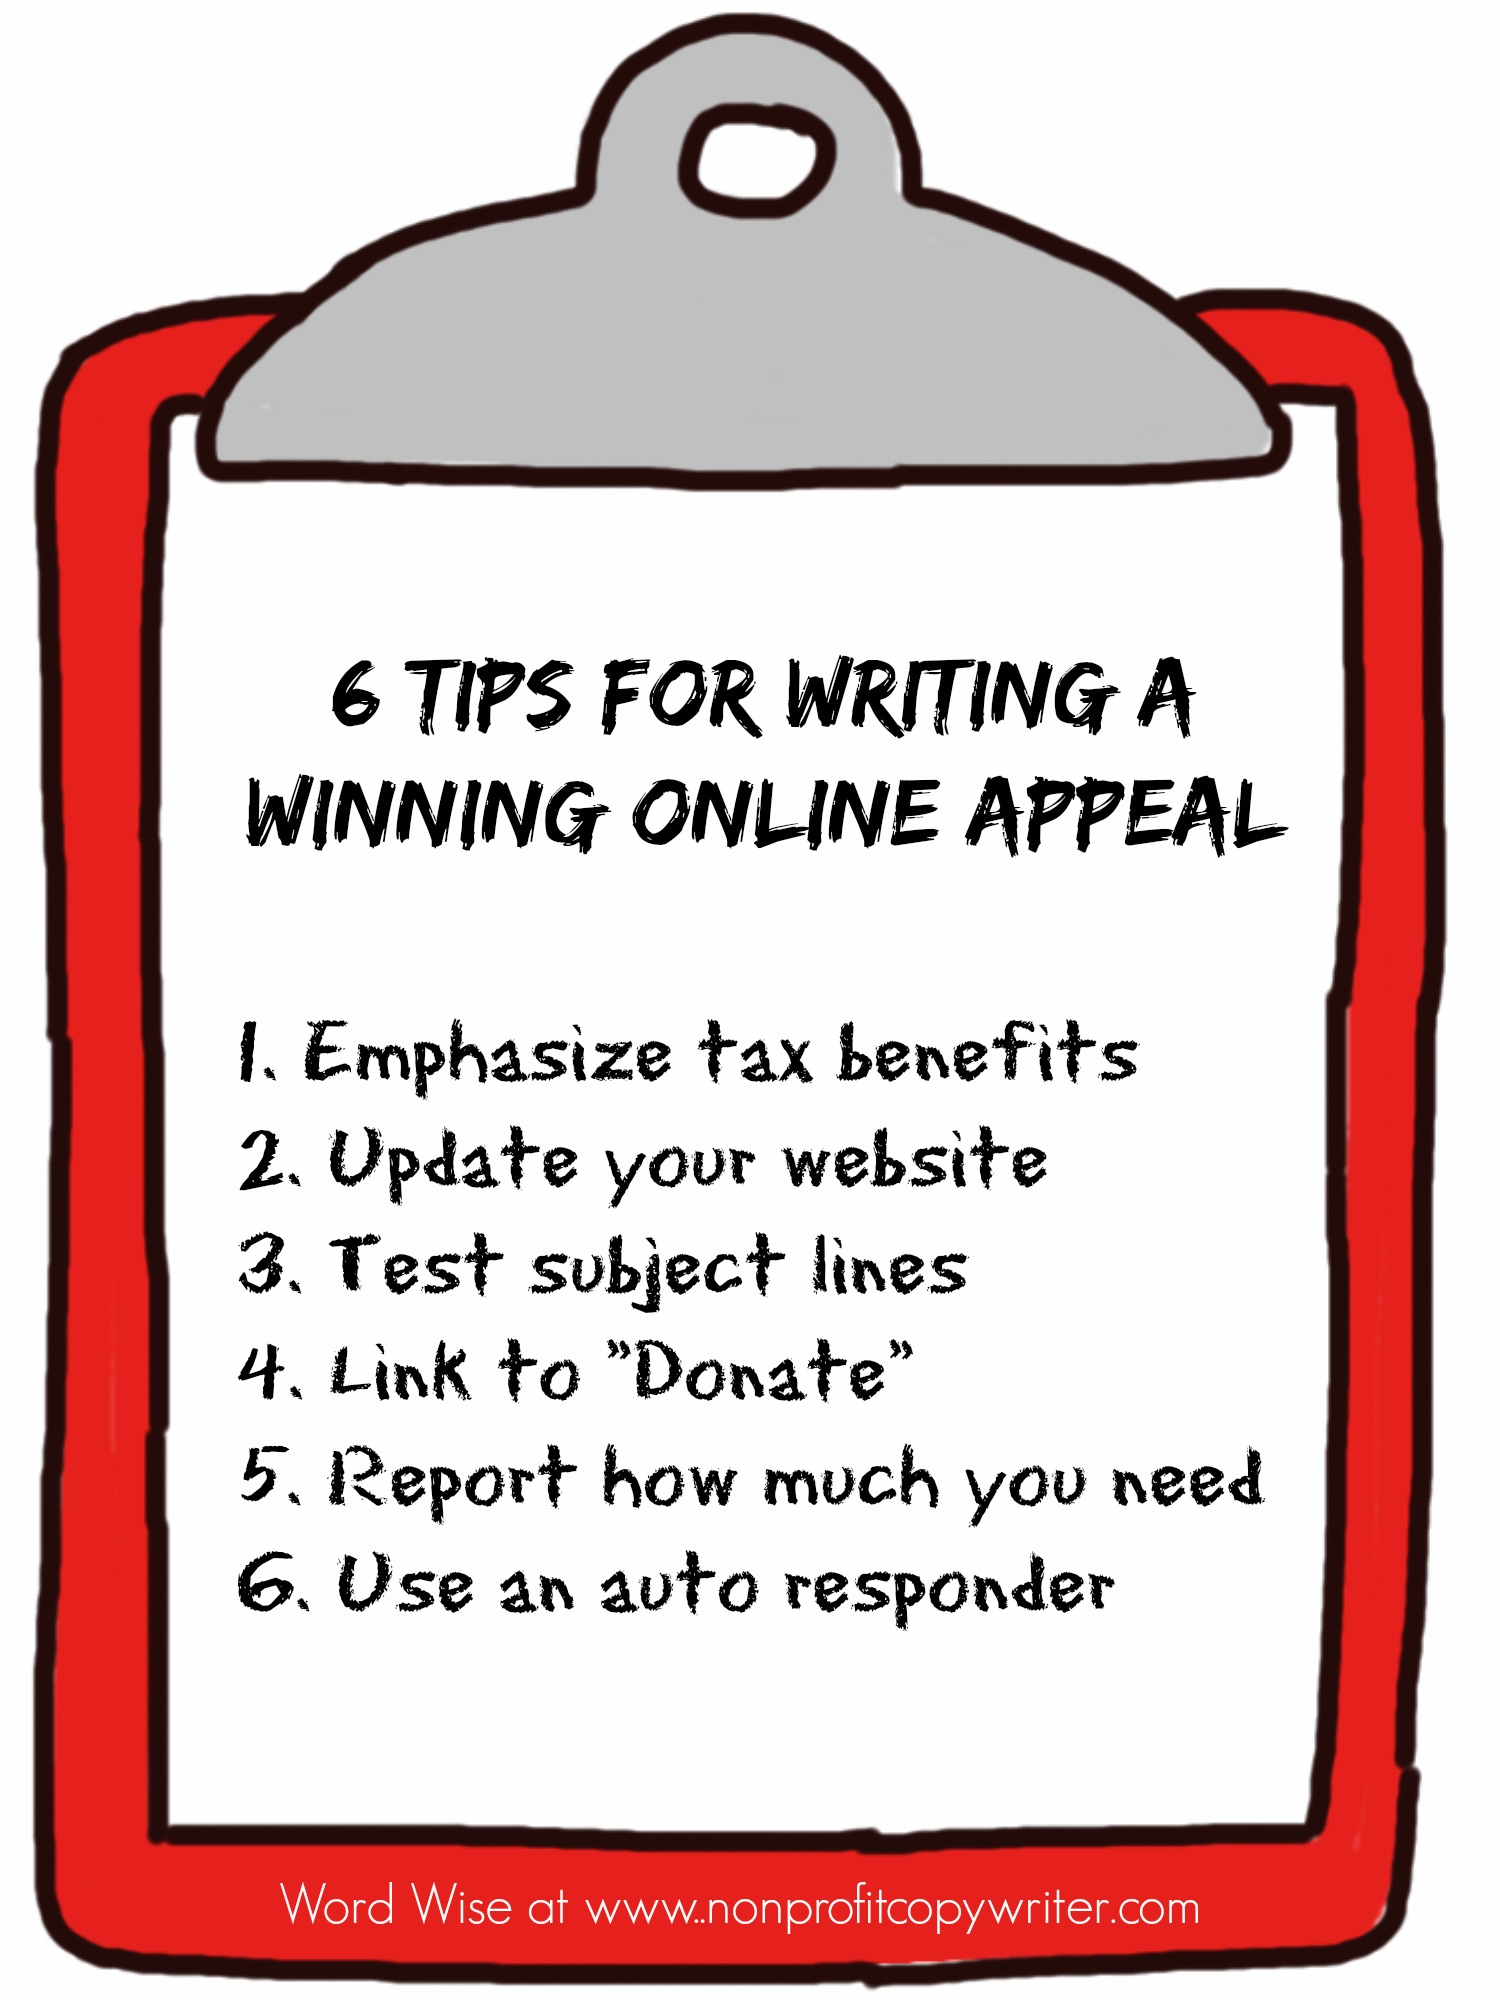 6 tips for writing a winning online appeal with Word Wise at Nonprofit Copywriter